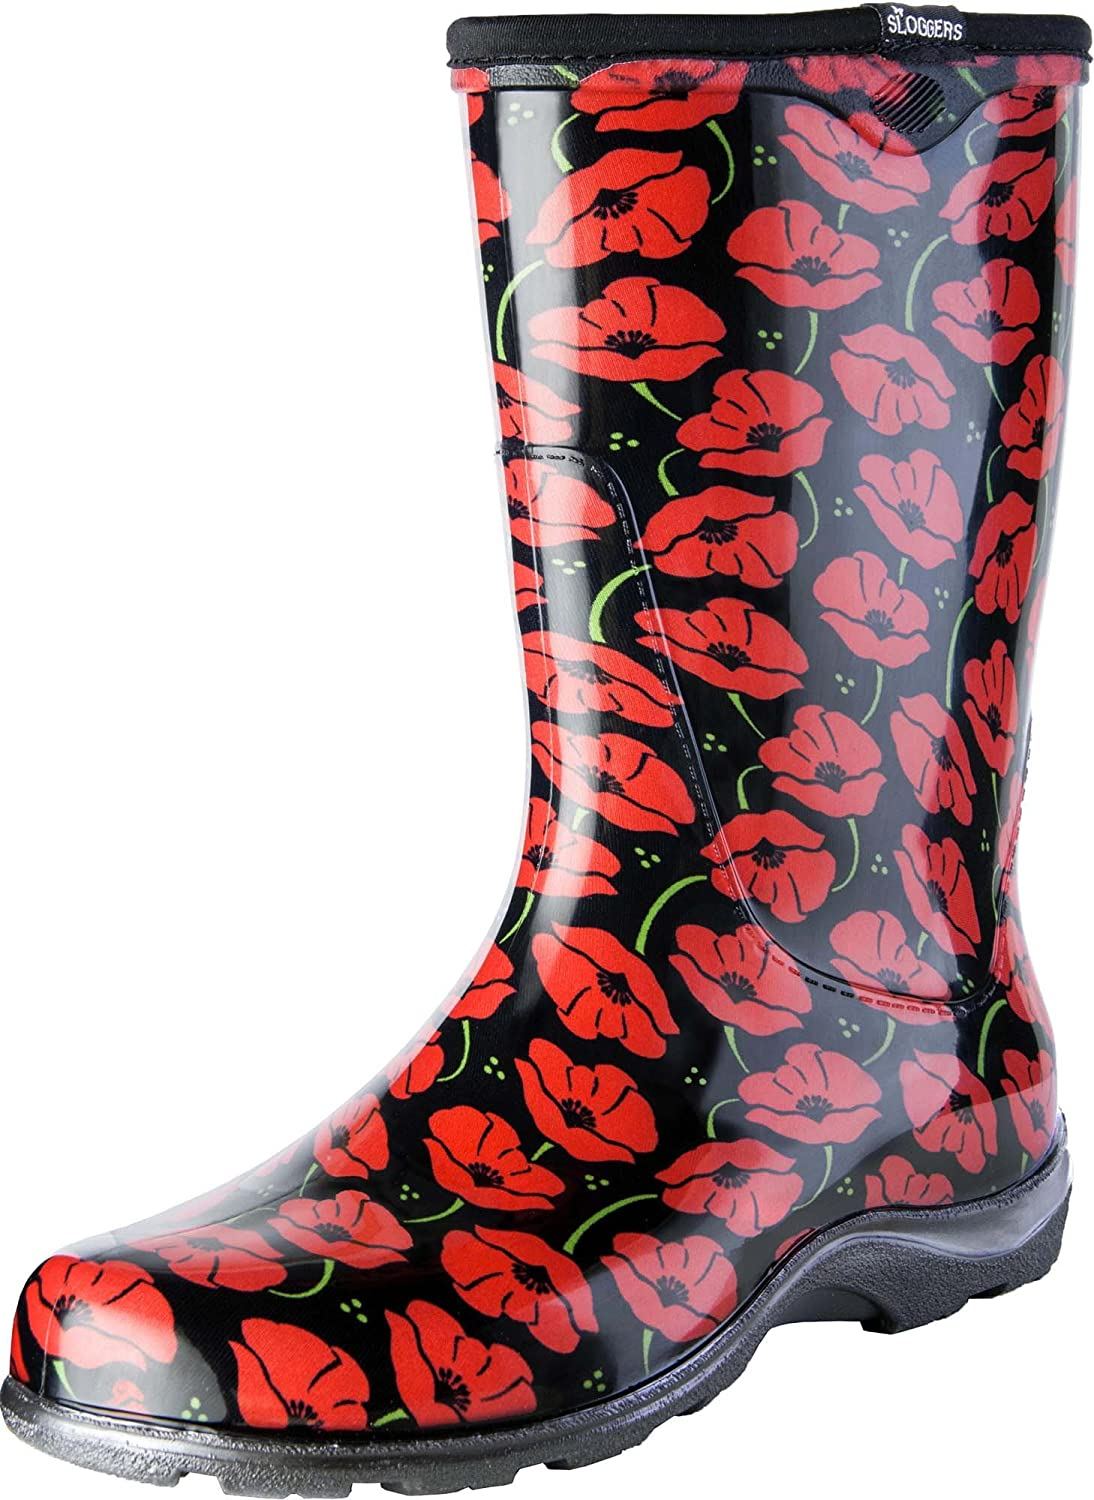 Sloggers Women's Waterproof Rain and Garden Boot with Comfort Insole, Poppy Red, Size 9, Style 5016POR09